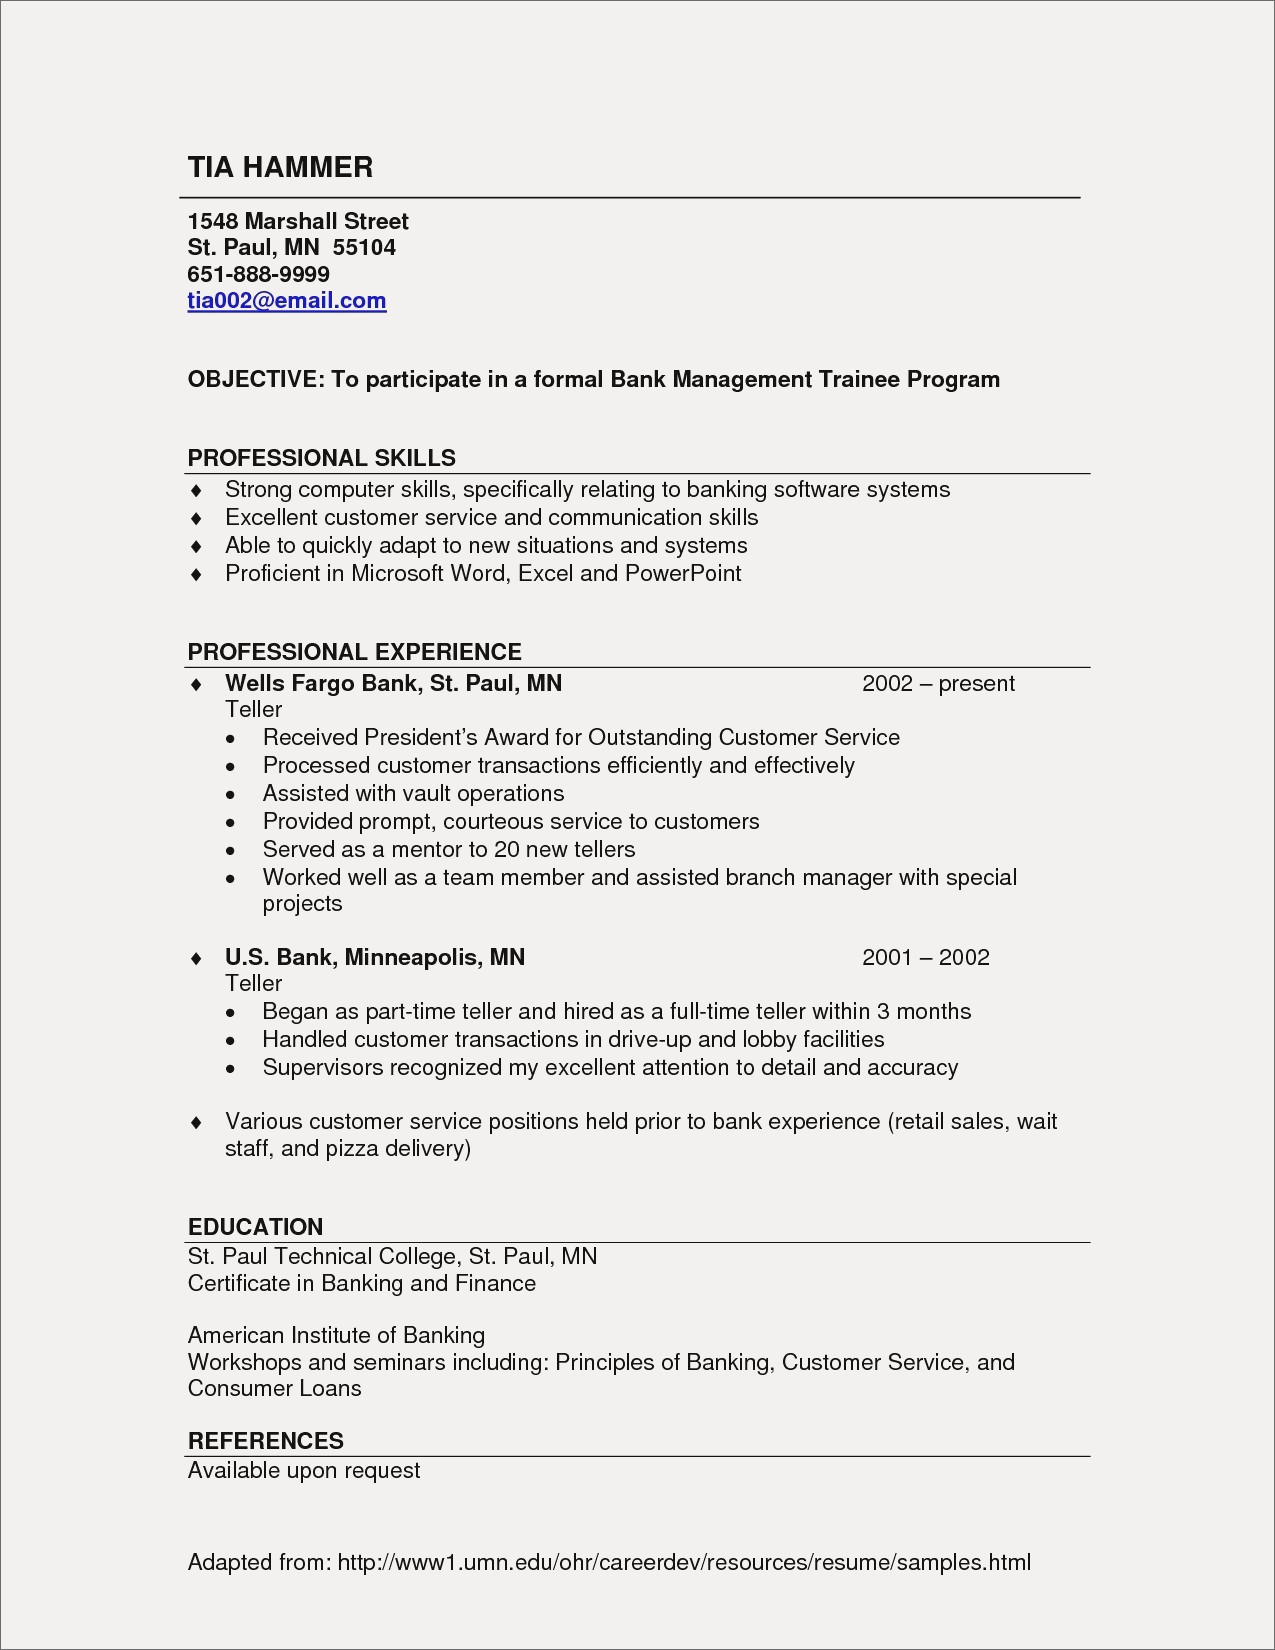 marshall resume template Collection-Resume Templates For Customer Service Best Customer Service Resume Sample Beautiful Resume Examples 0d Skills 3-h